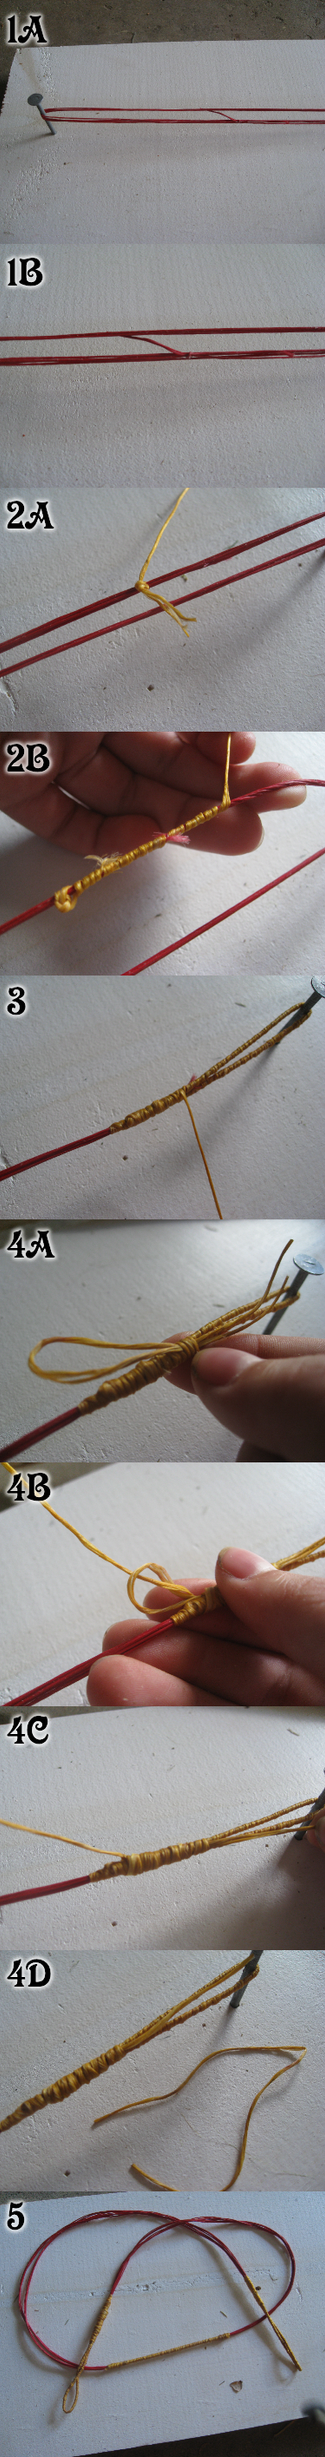 Bowstring Tutorial by Minteey